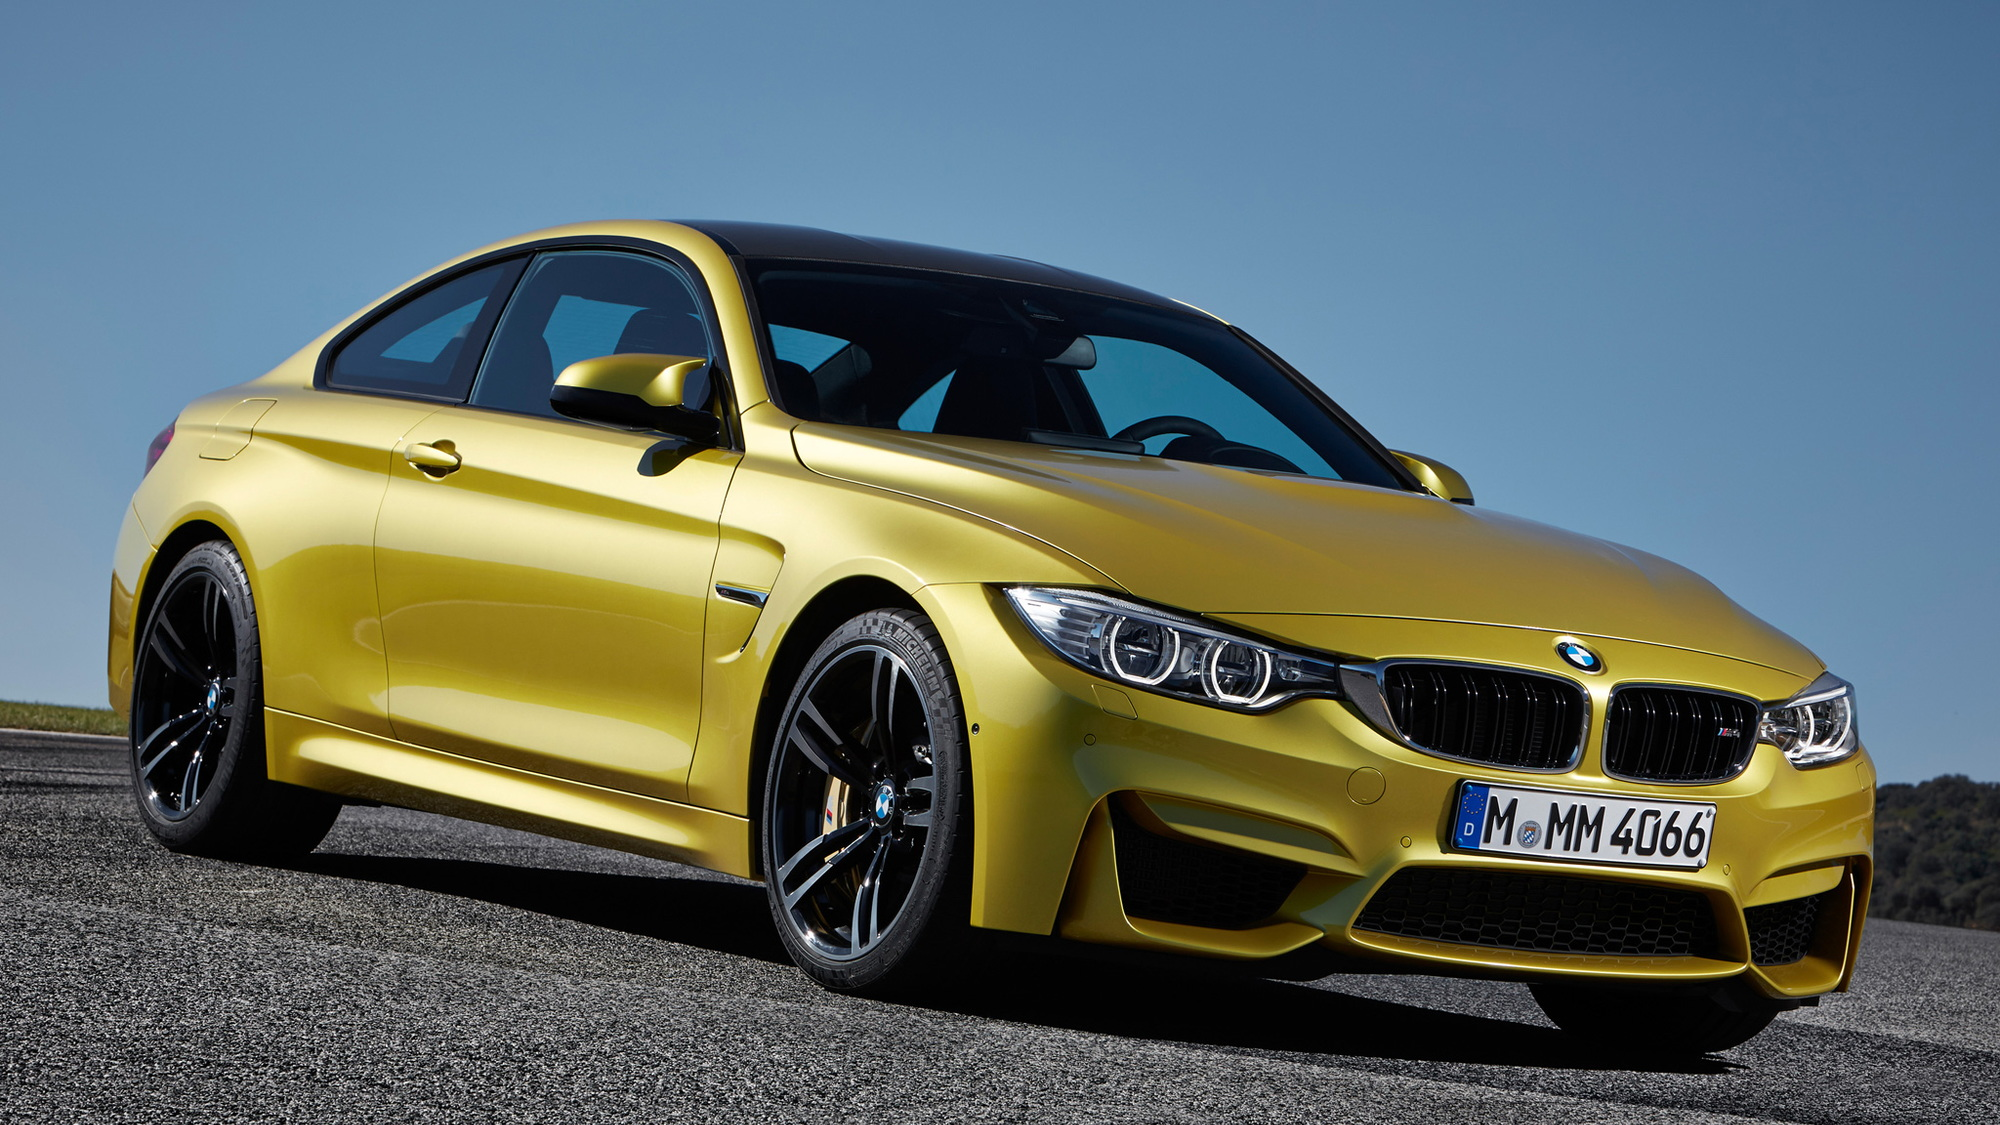 2015 BMW M4 leaked images